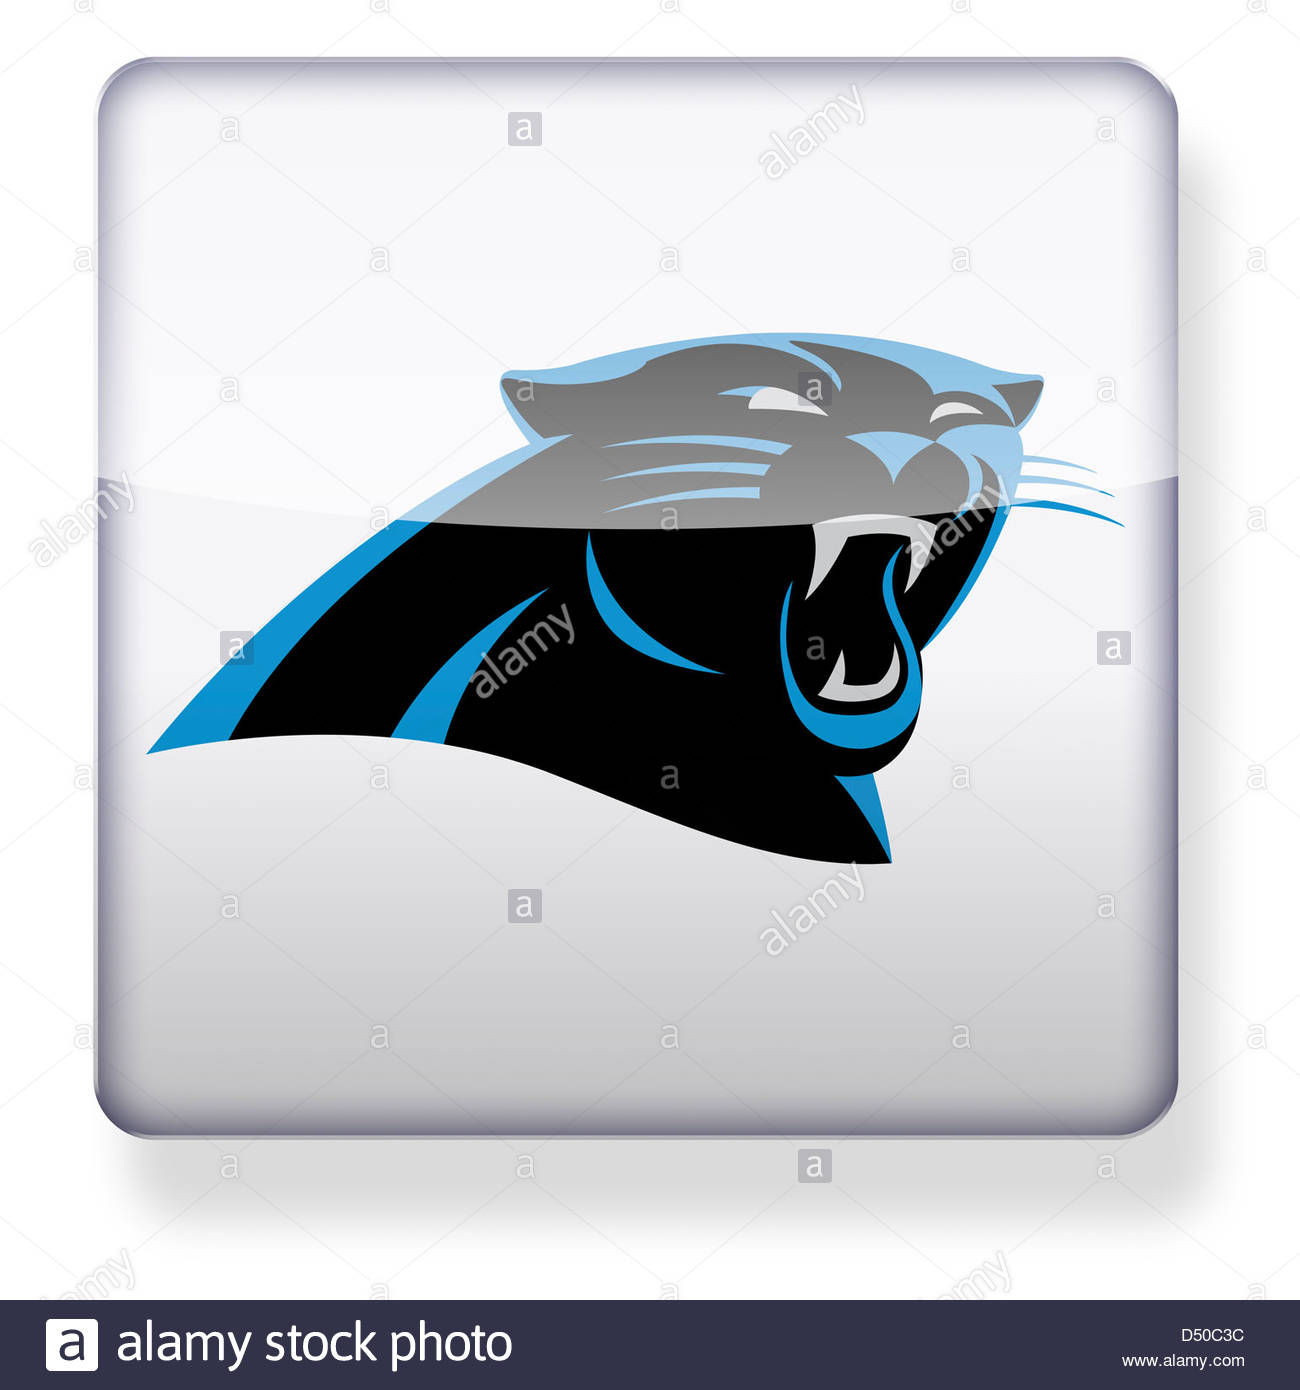 1300x1390 Carolina Panthers Logo As An App Icon. Clipping Path Included